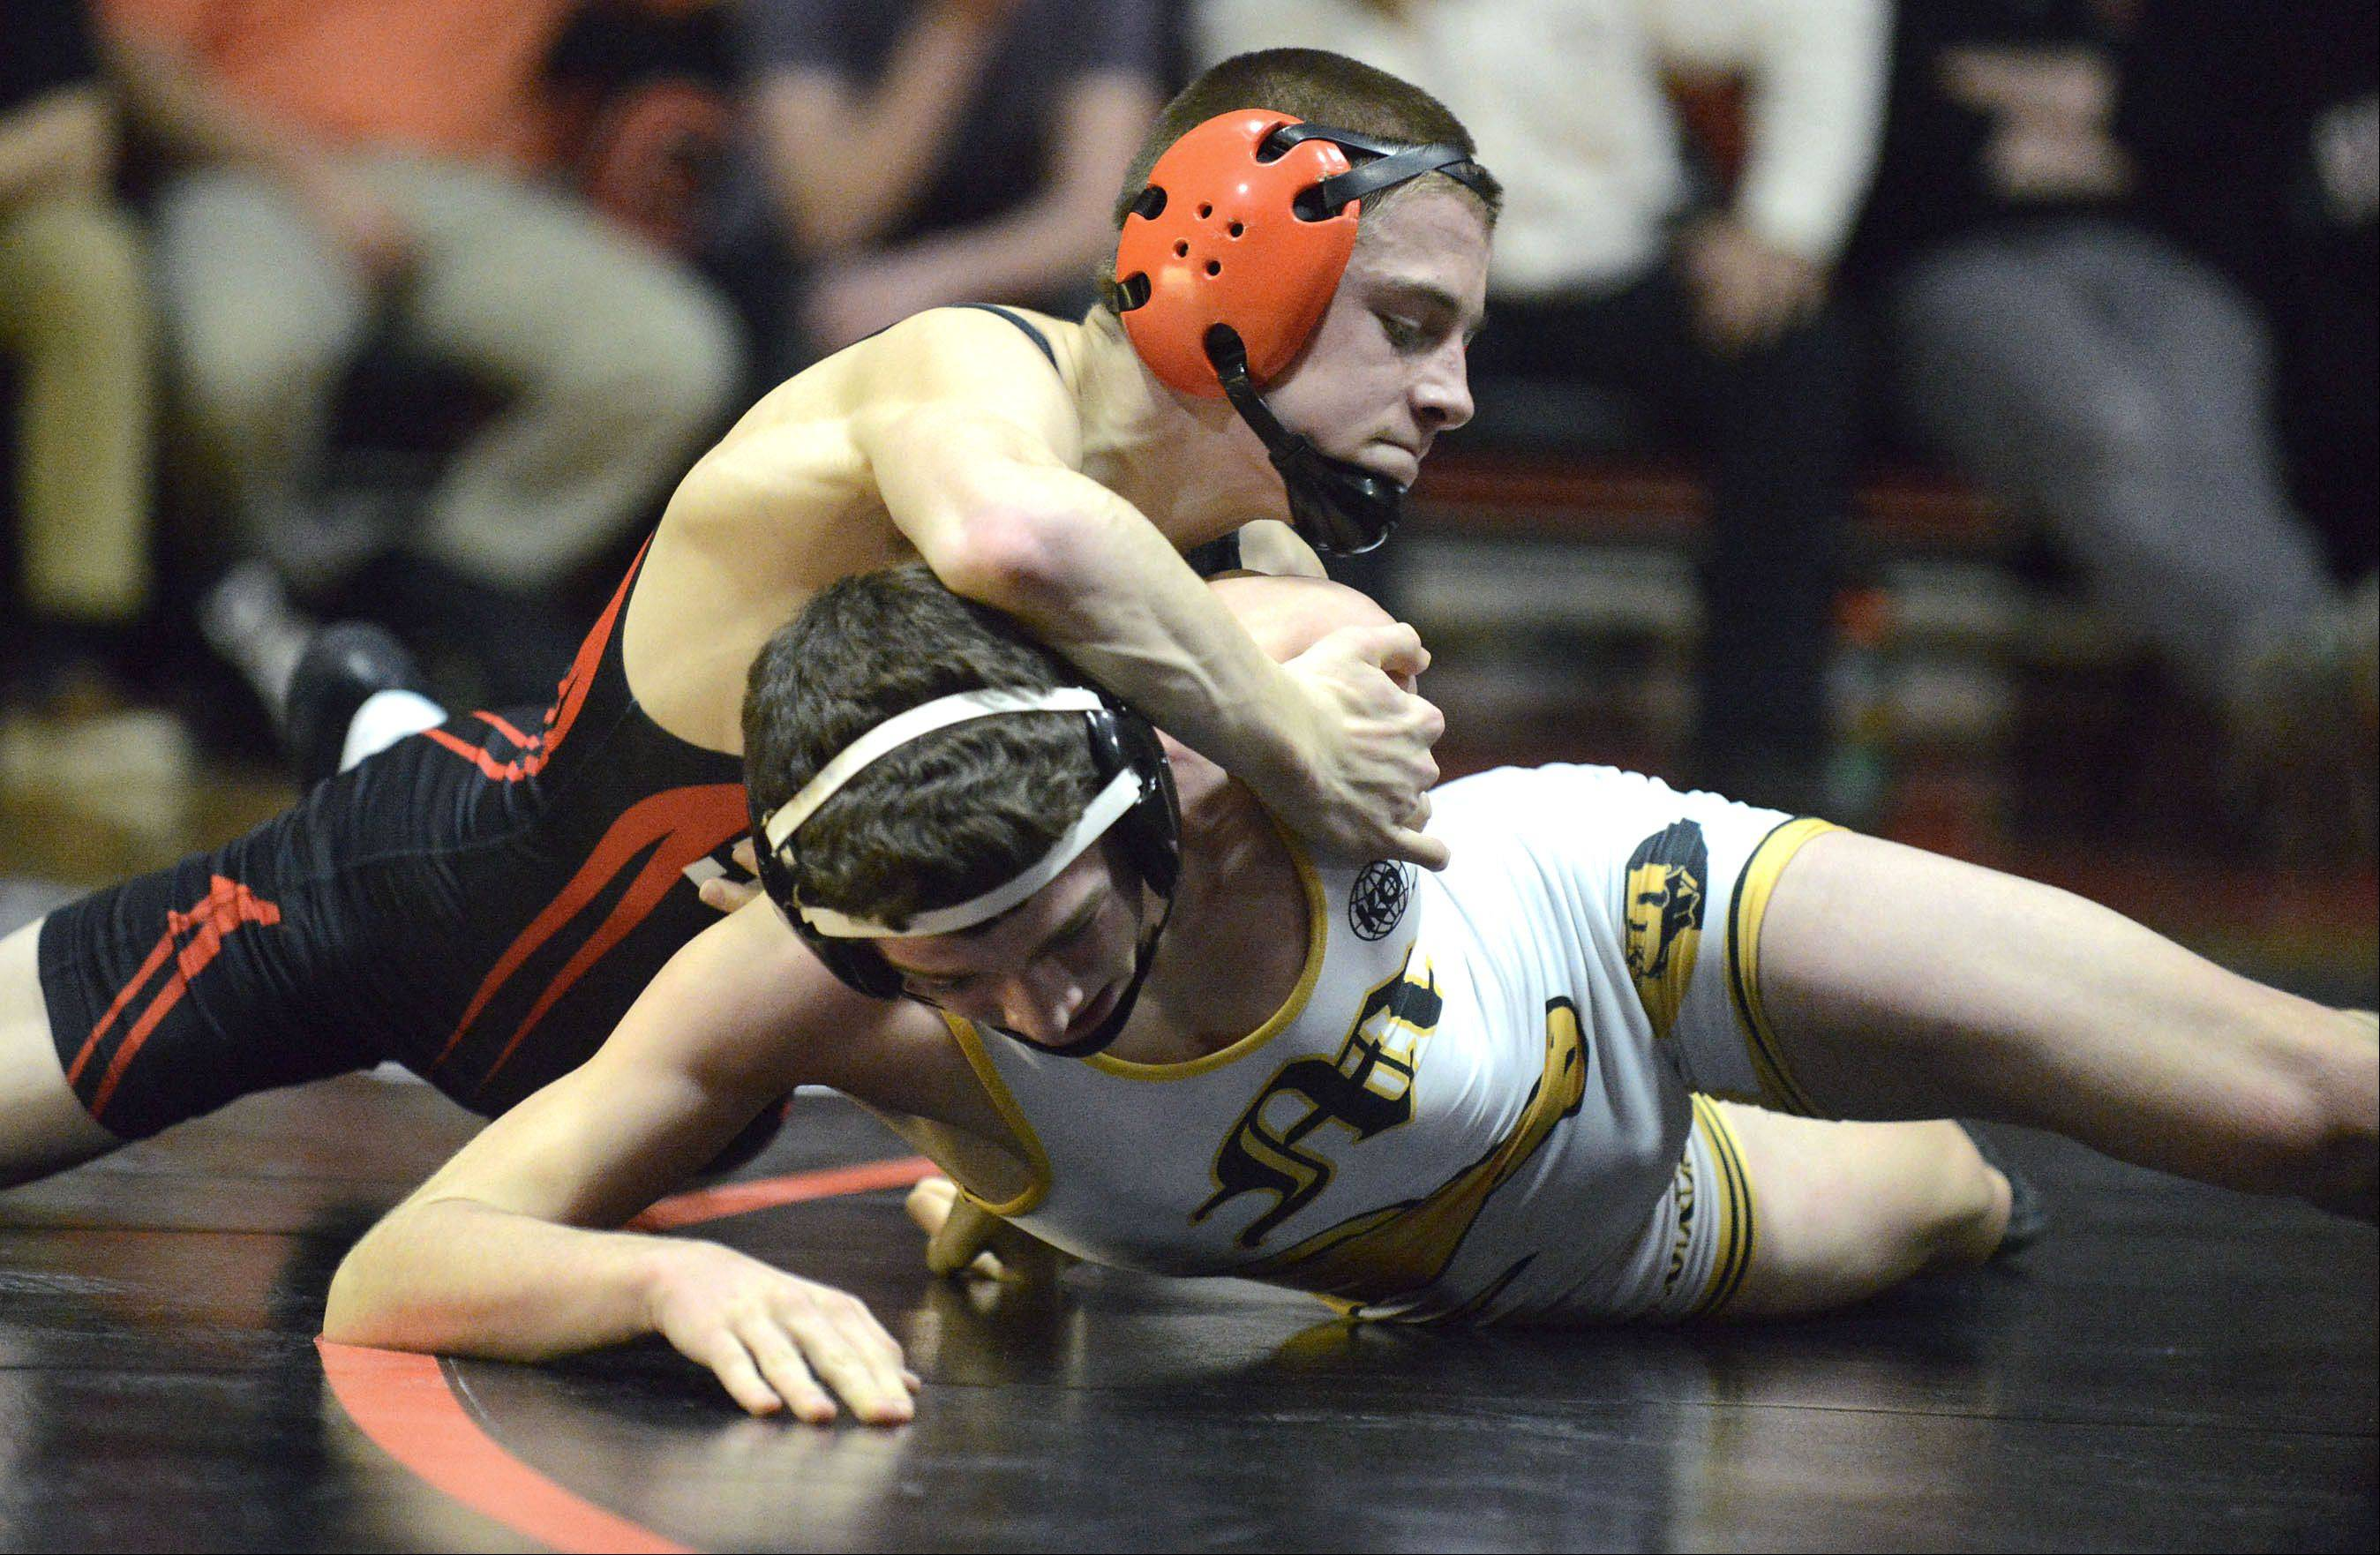 St. Charles East's DJ McDermott takes the win in the 120 pound match vs. Metea Valley's Jake Toepfer on Thursday, December 19.